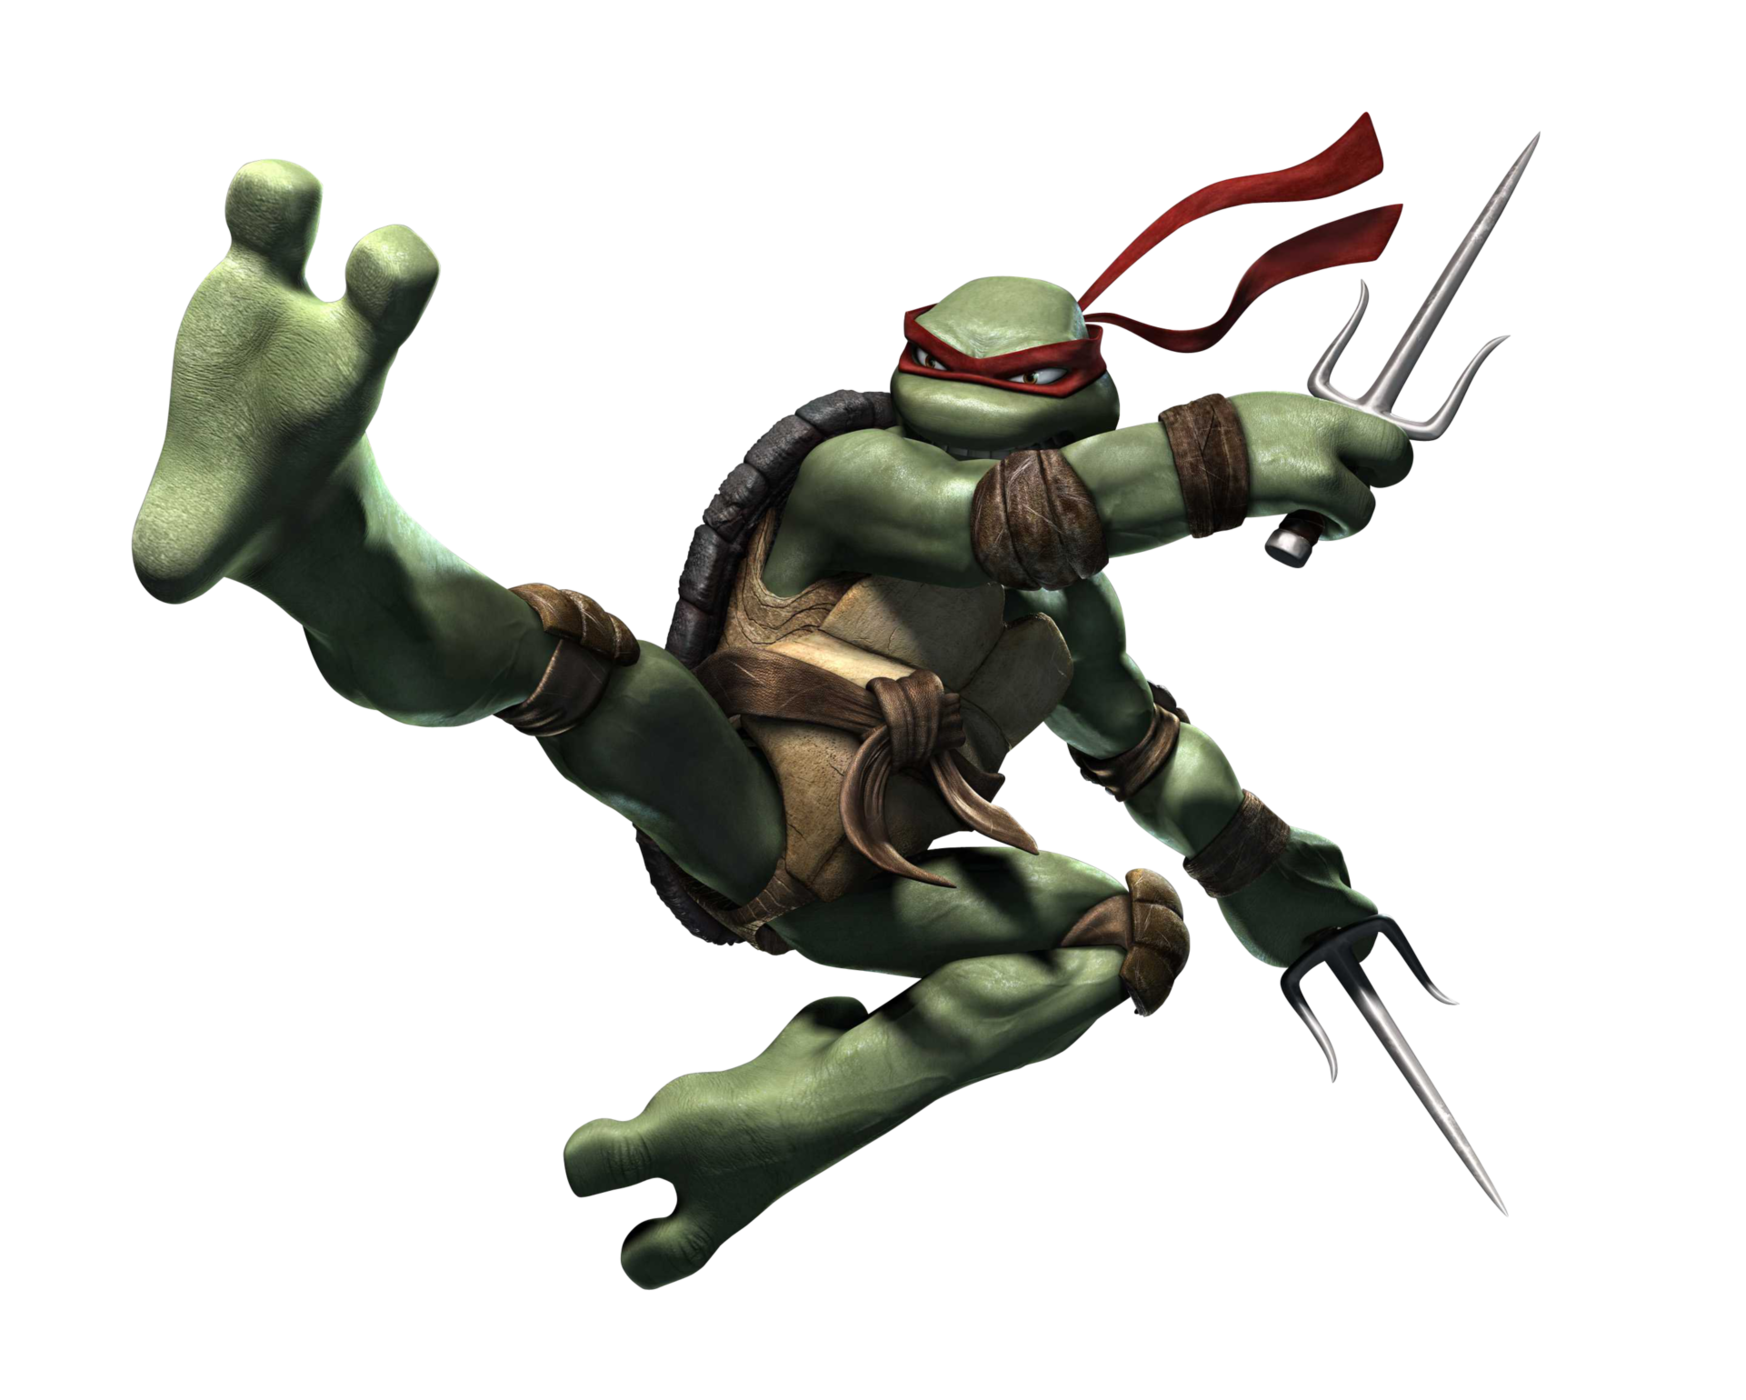 ninja turtle, raphael death battle wiki fandom powered wikia #24280